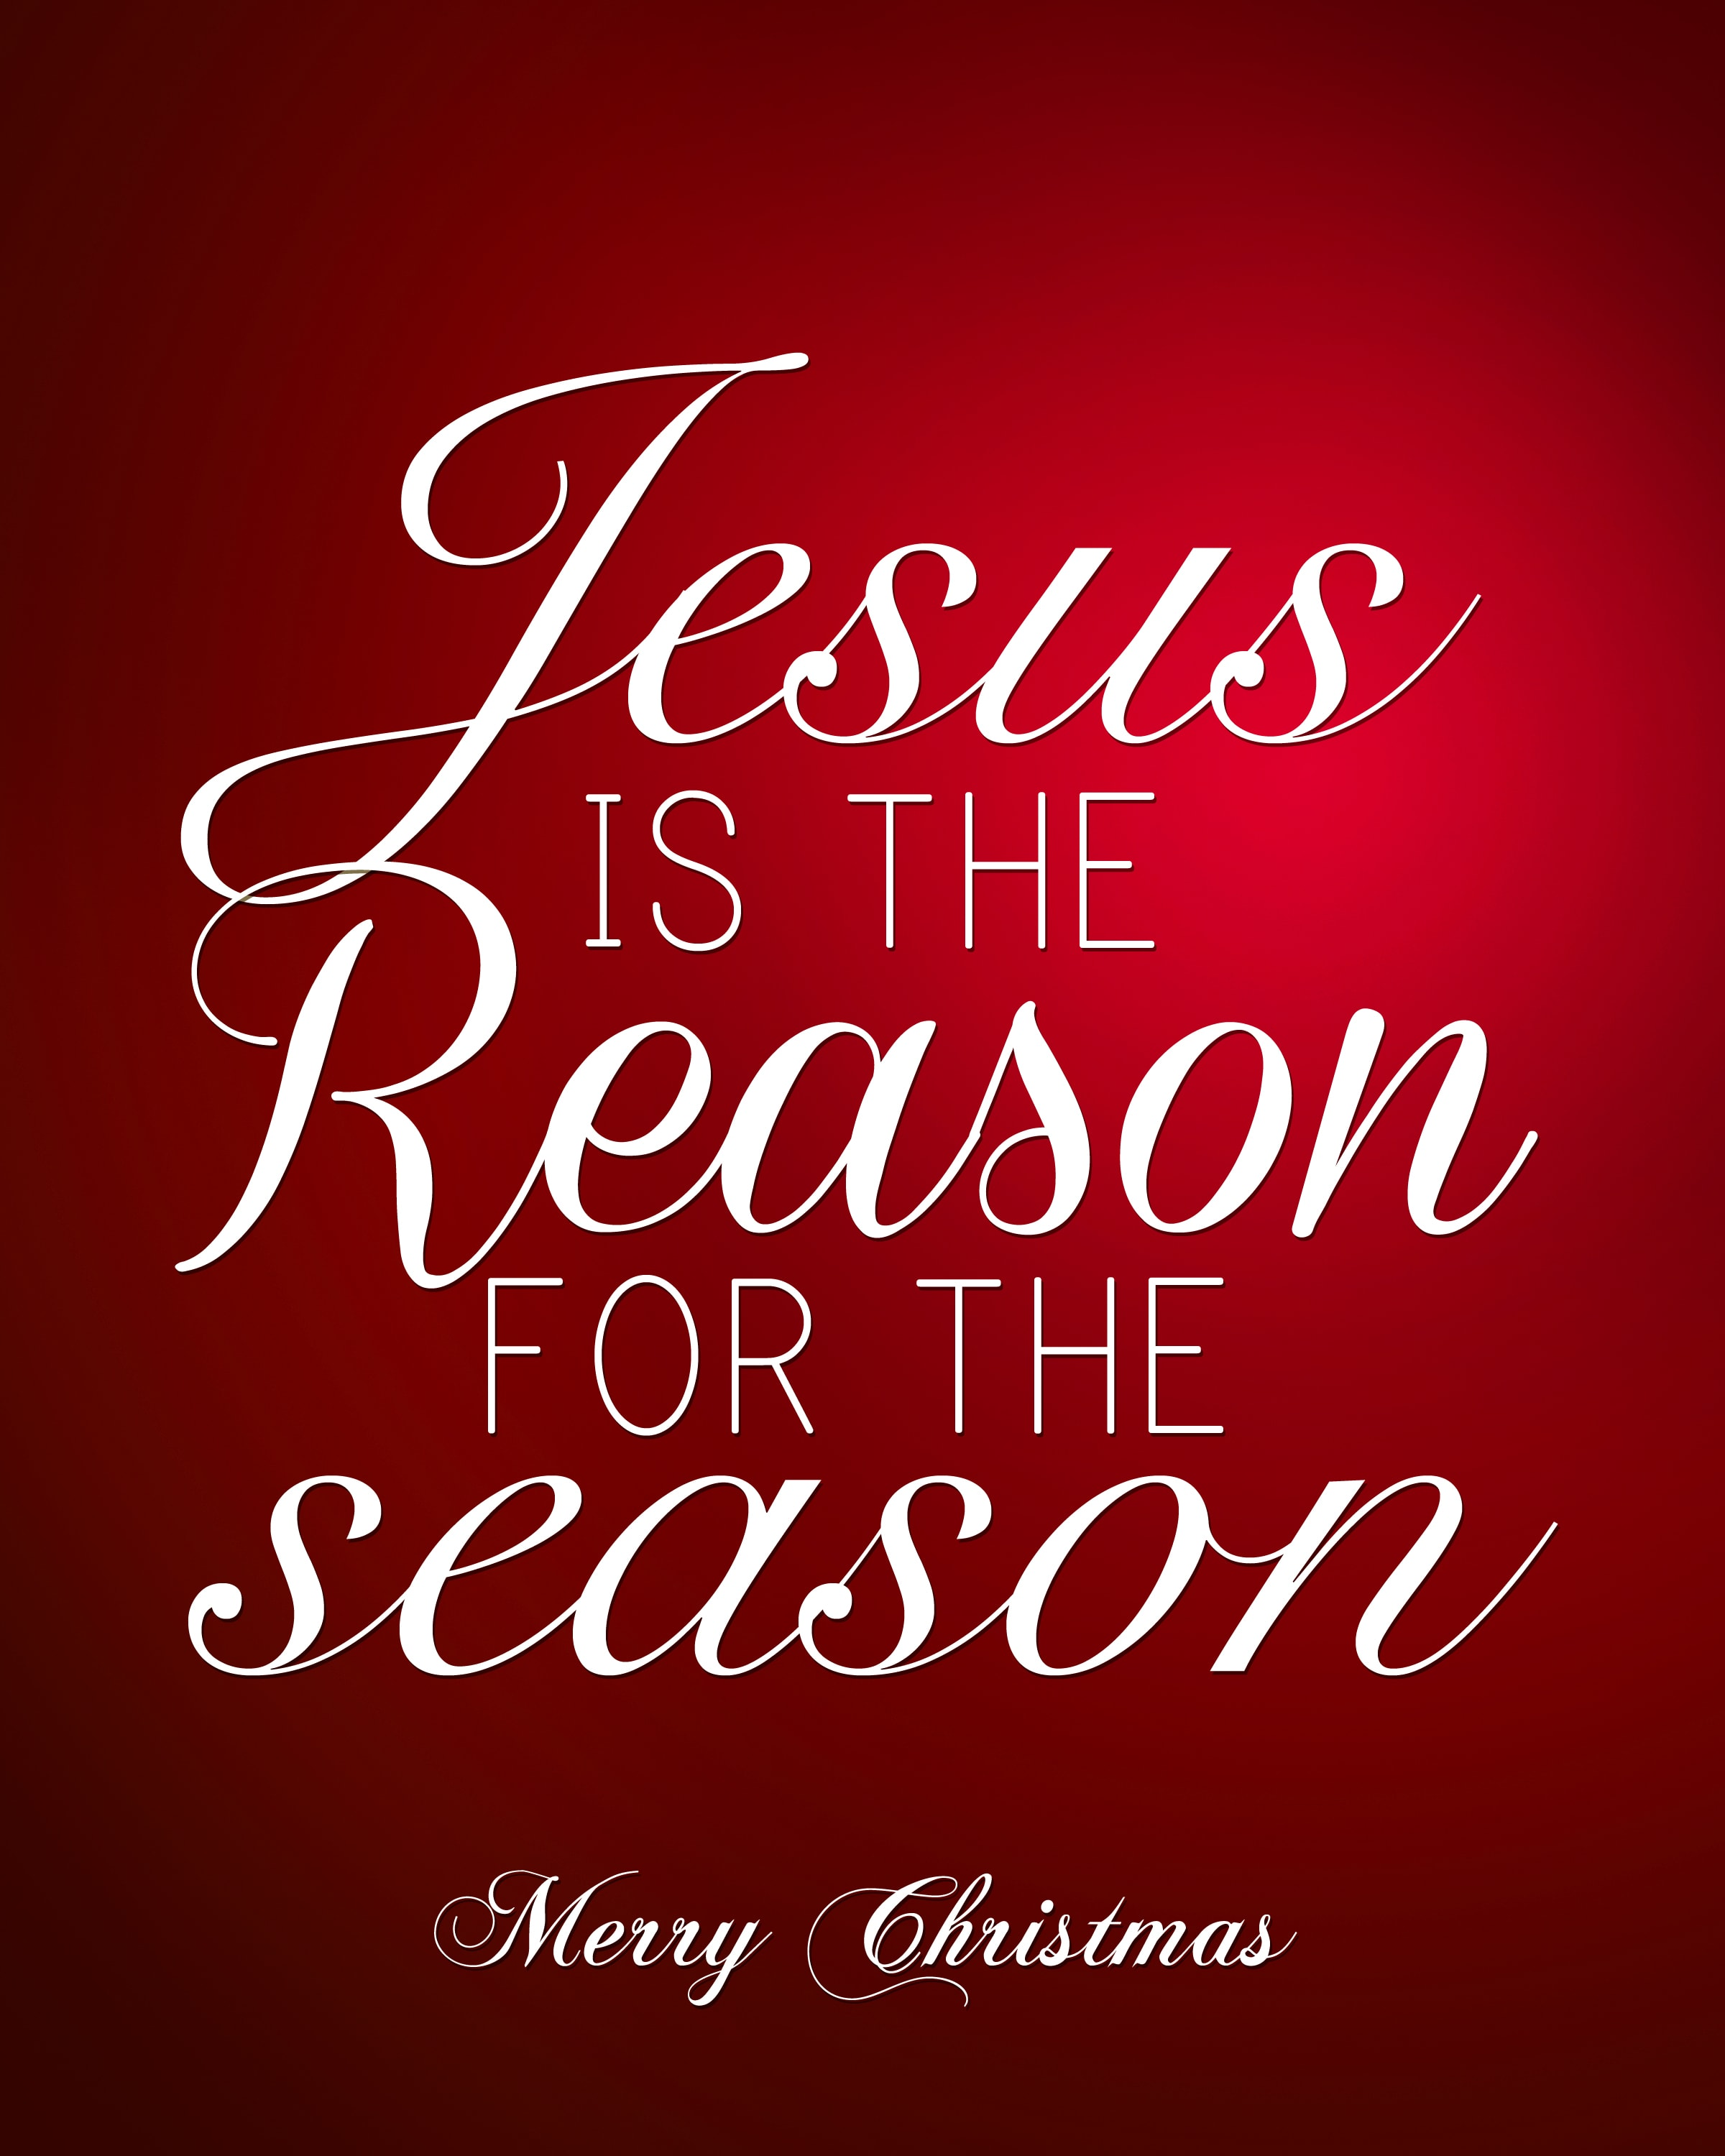 Jesus is the reason for the season free printable poster.